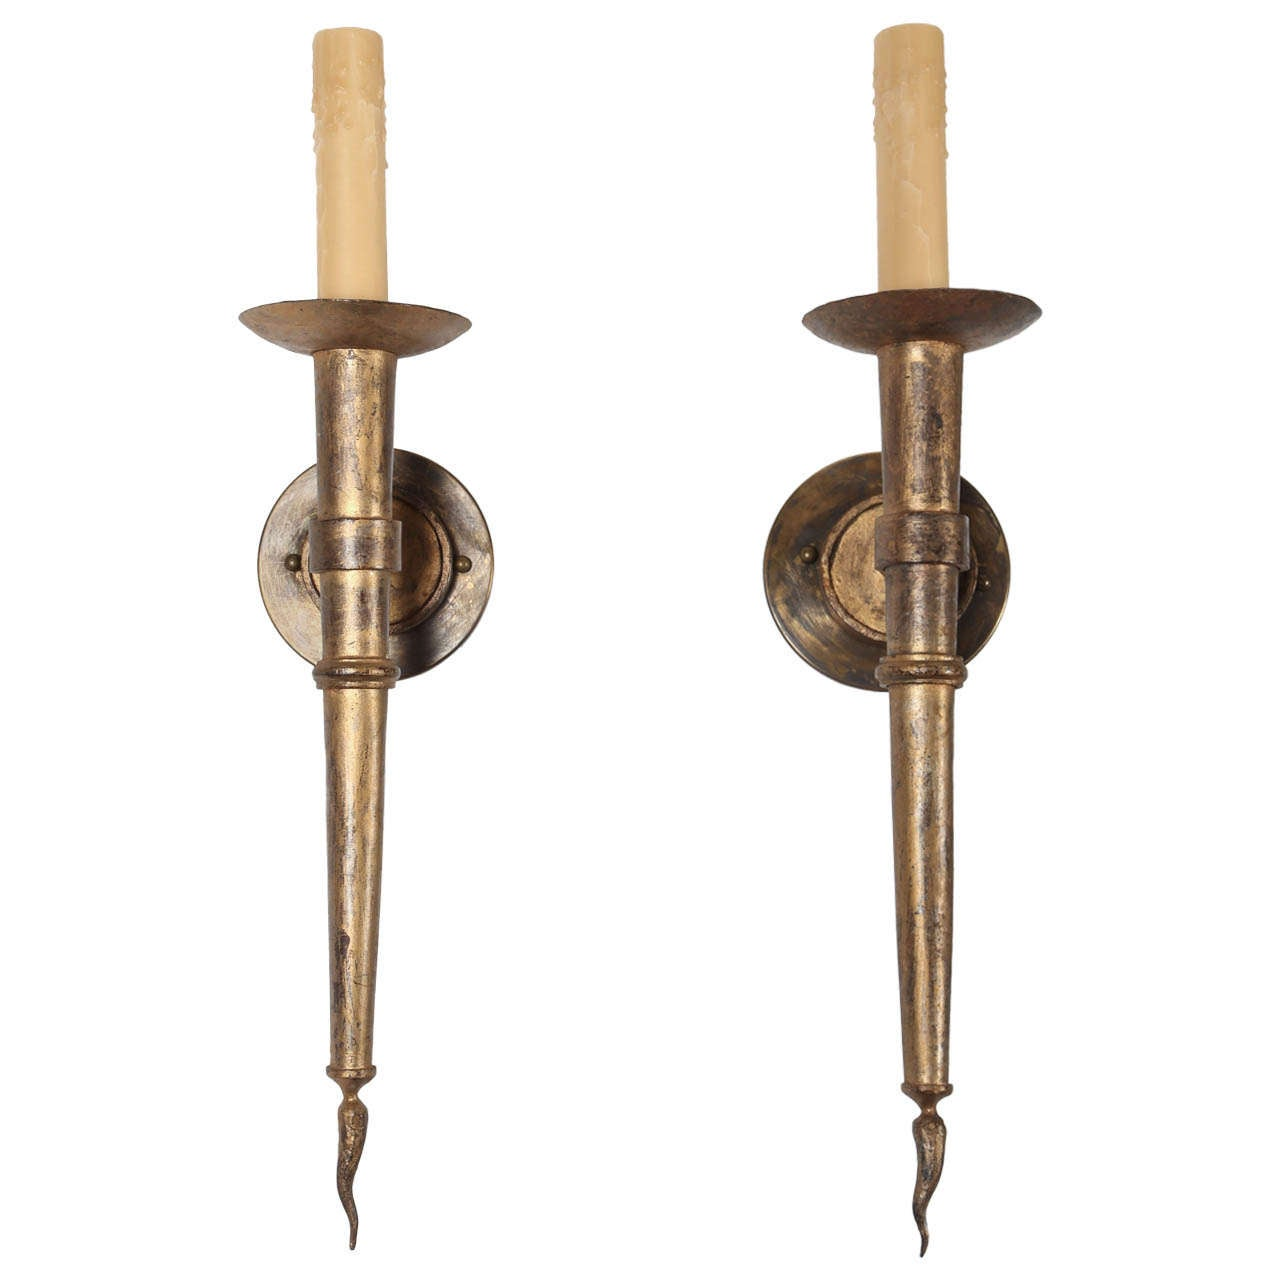 1940s French Gilded Iron Sconces